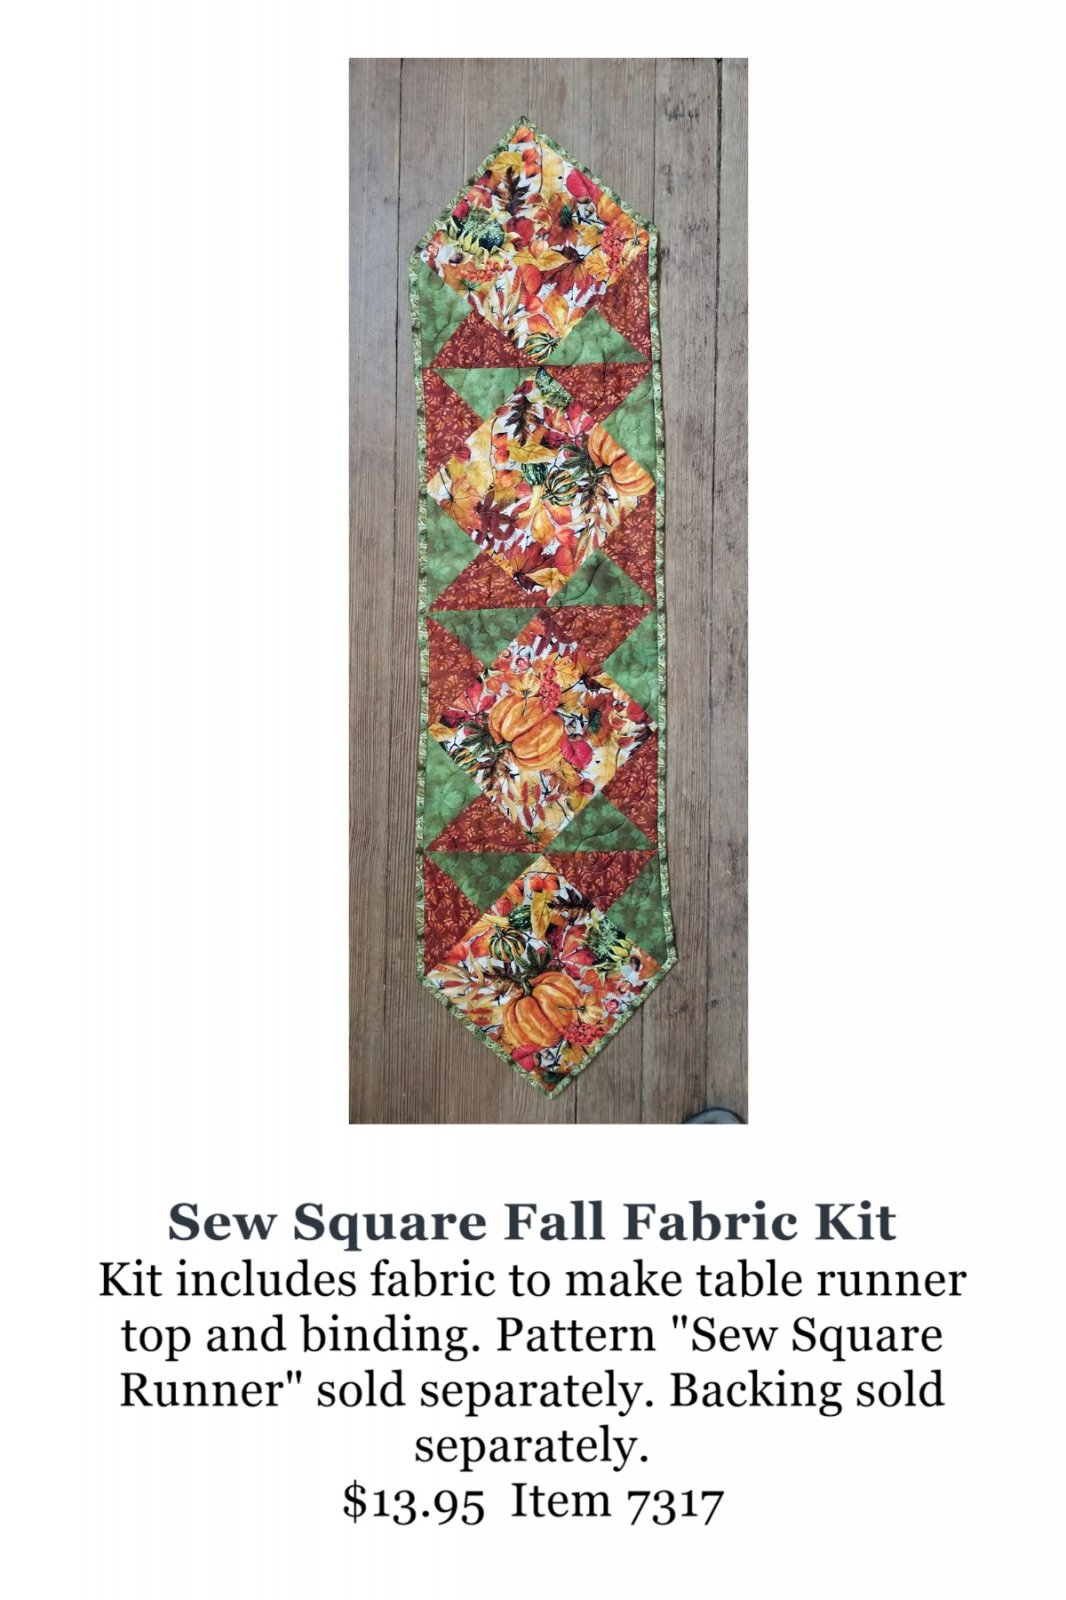 Sew Square Fall Fabric Kit